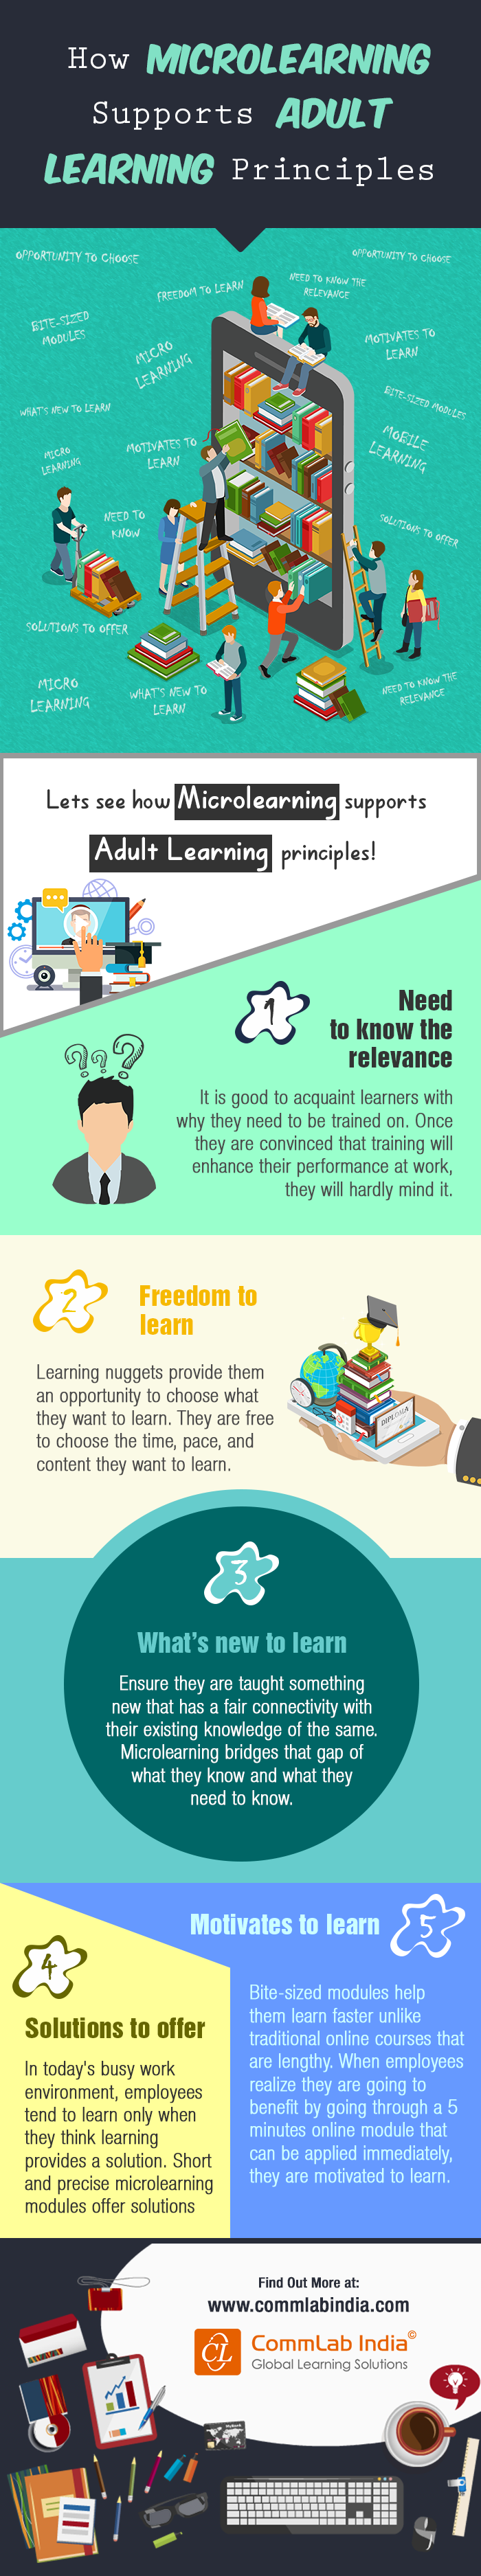 How Microlearning Supports Adult Learning Principles [Infographic]